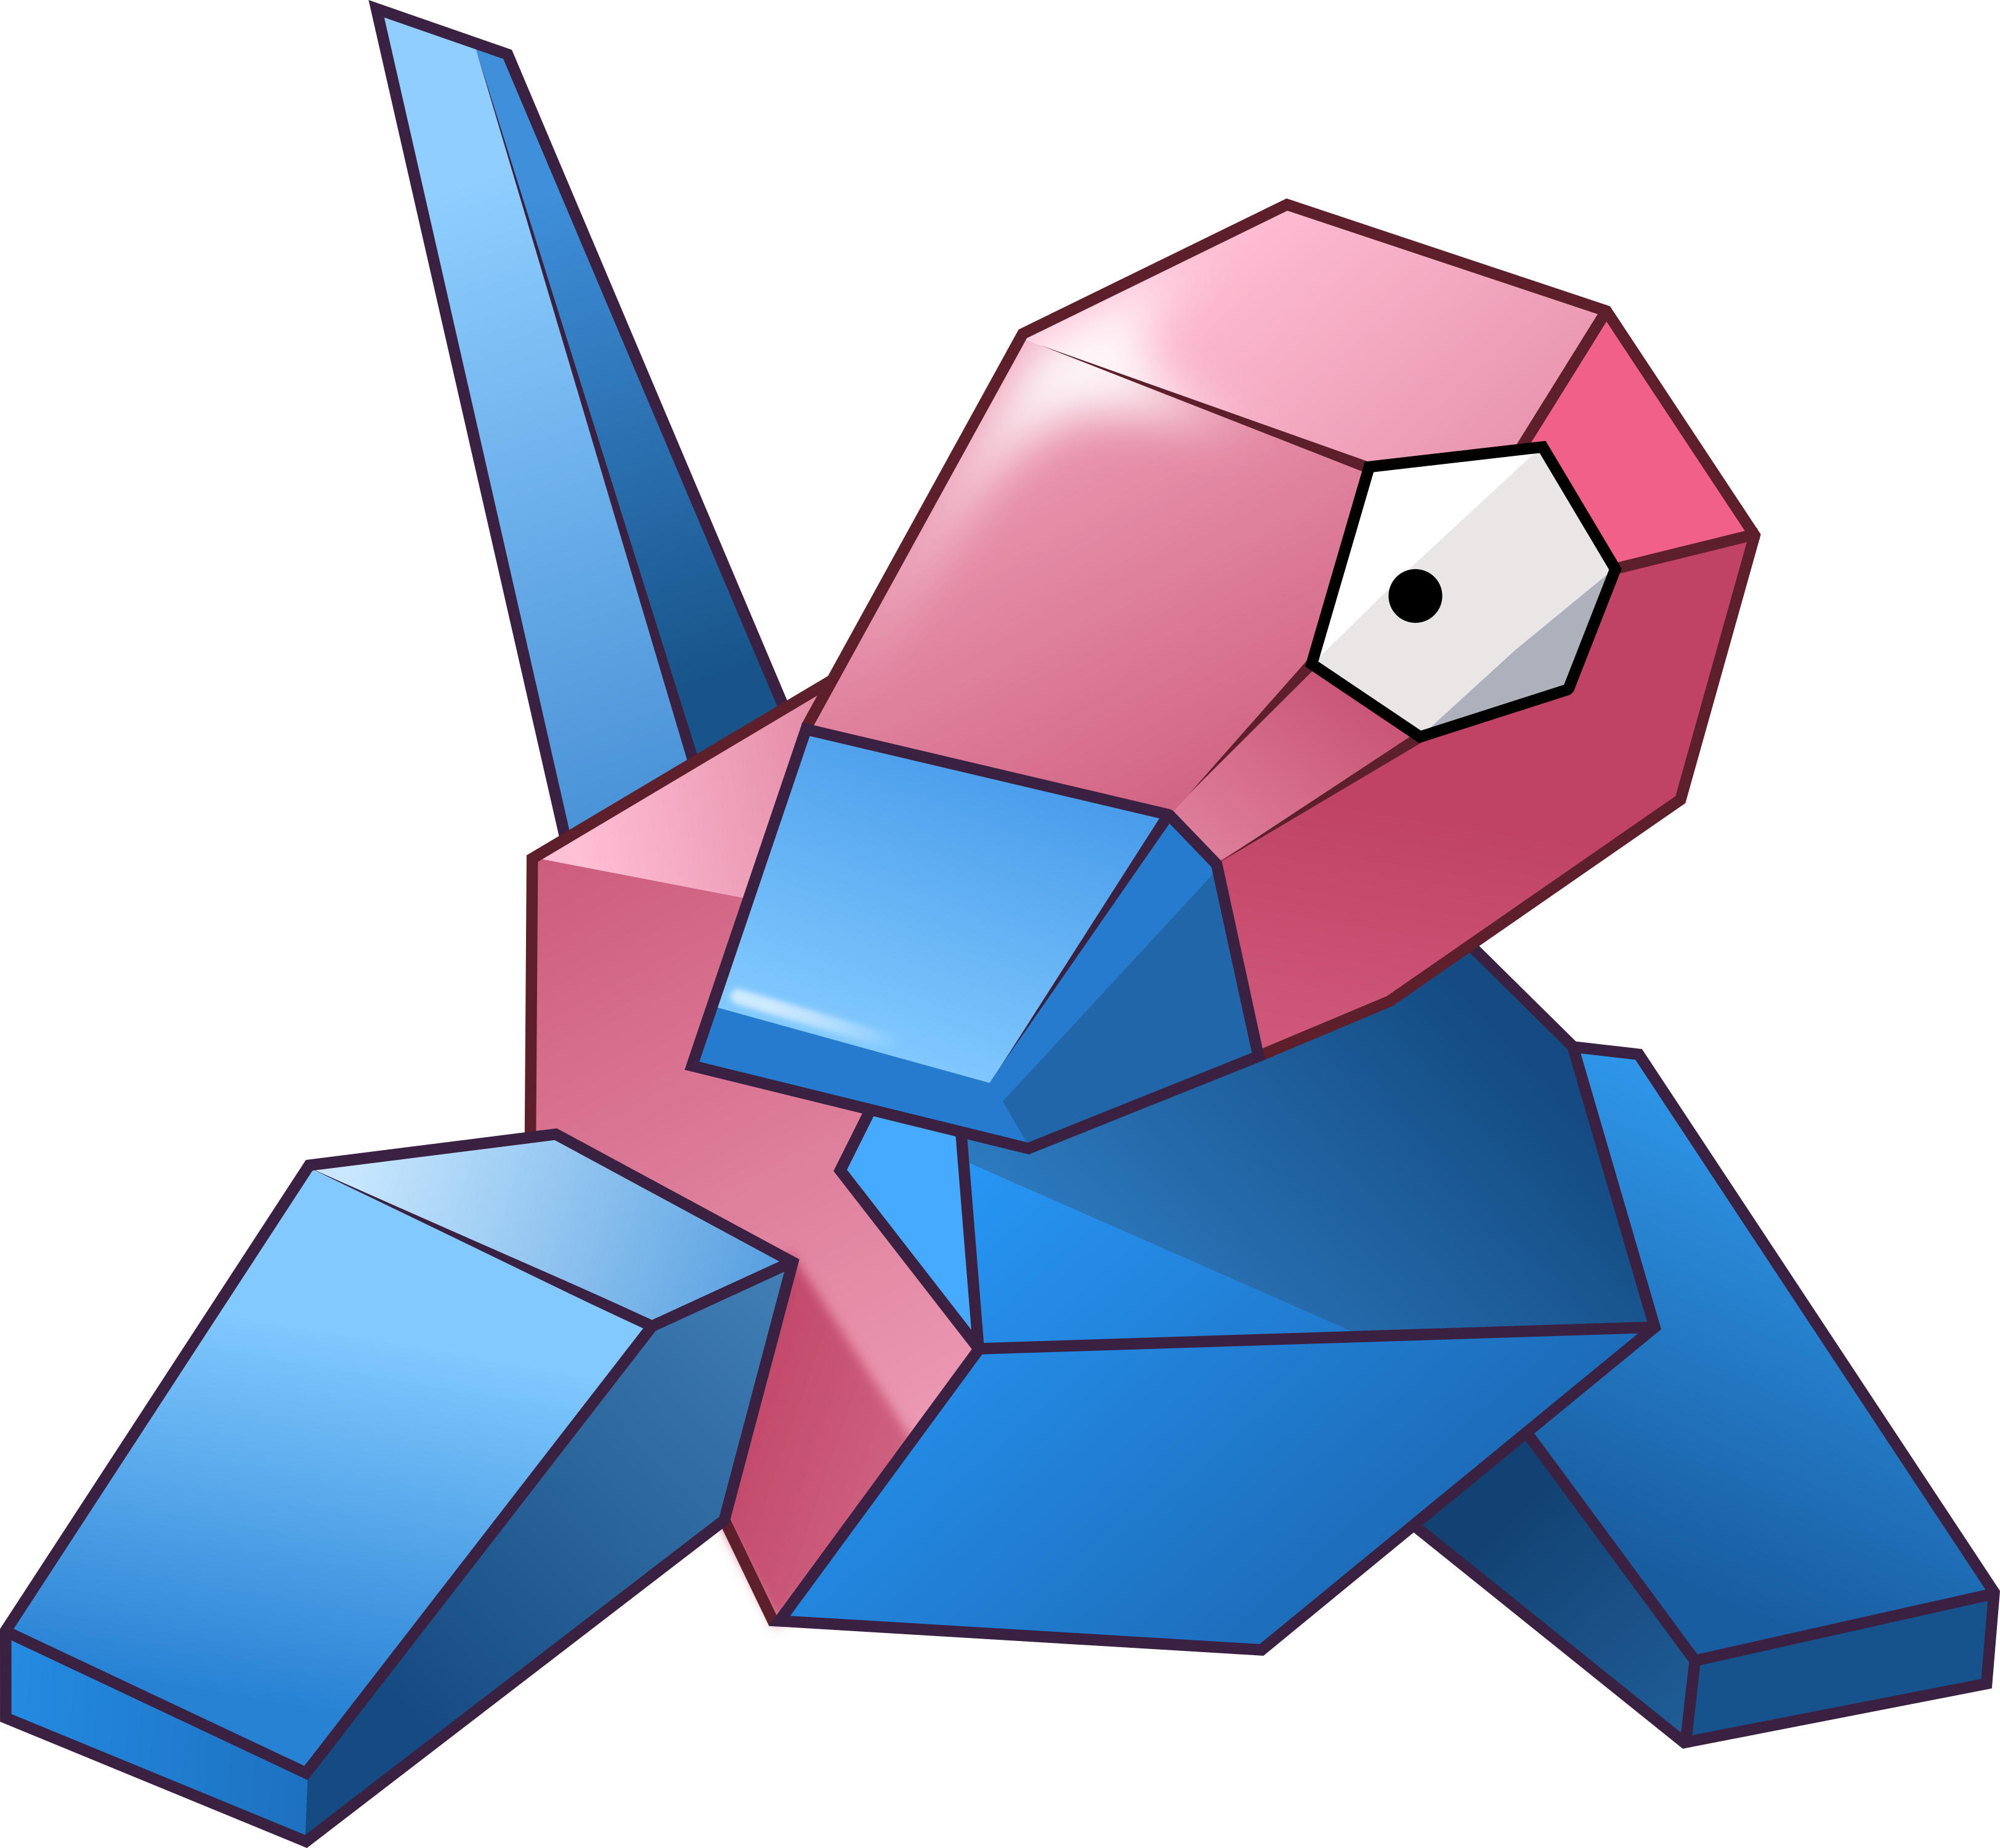 porygon_vector_by_umbravivens-d616o4t.pn